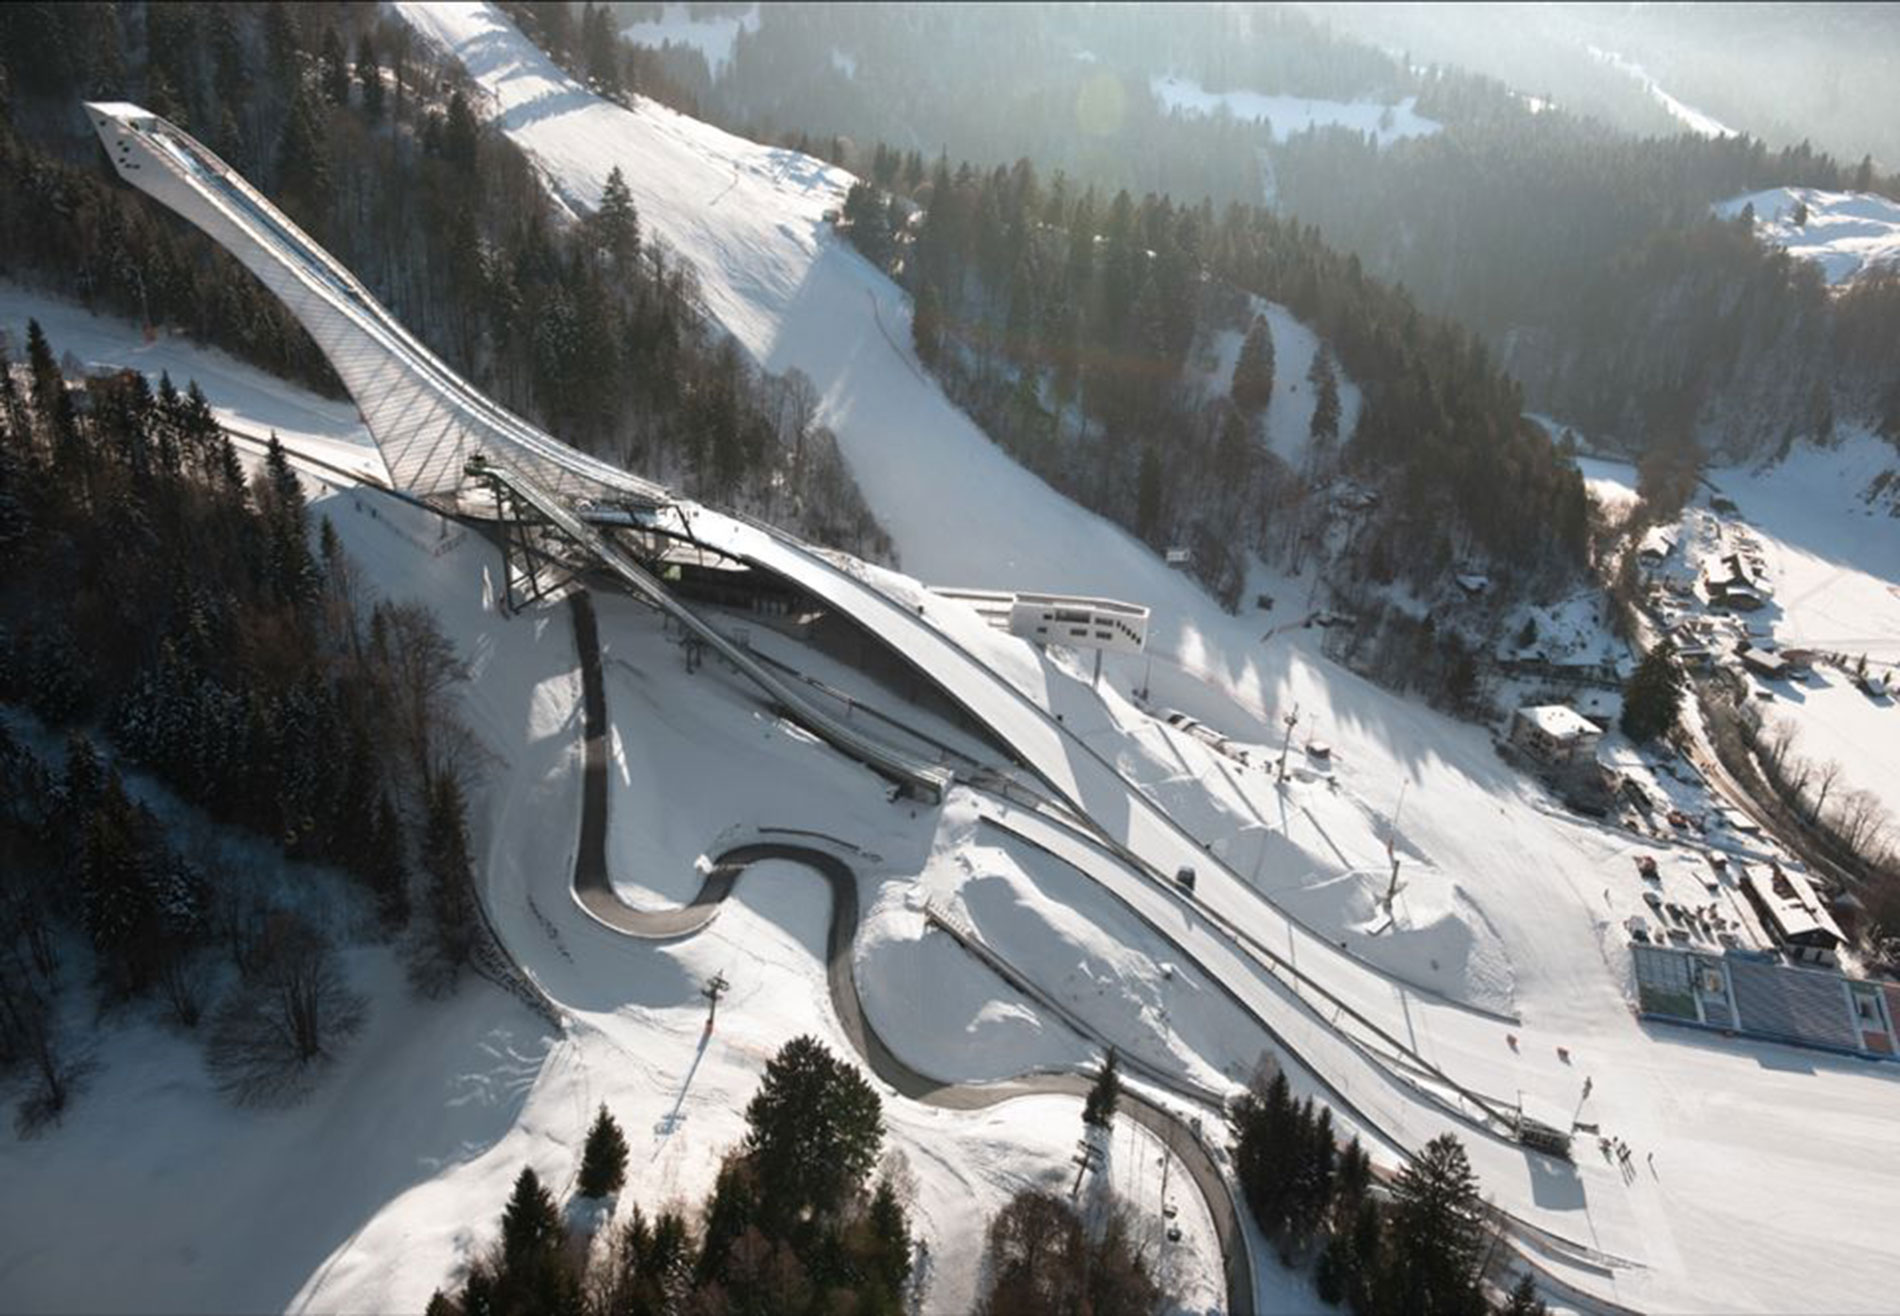 SKI JUMP mountain view